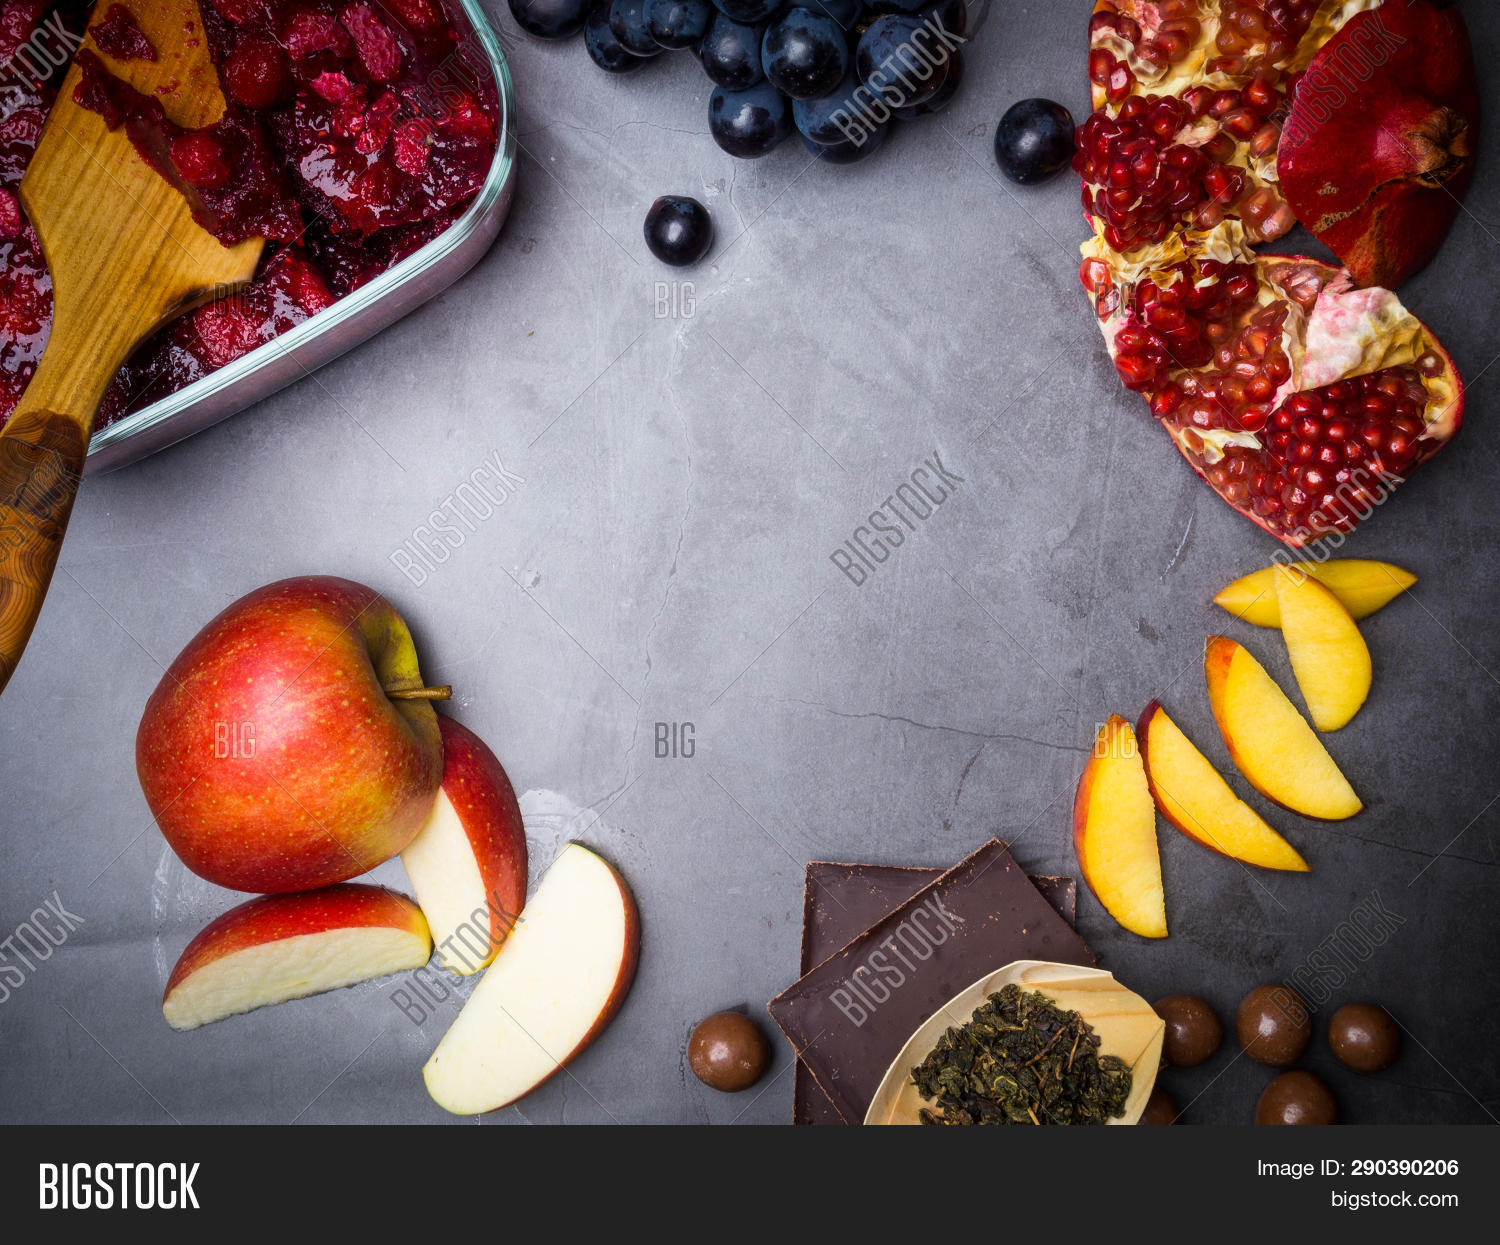 Foods That Good Image Photo Free Trial Bigstock